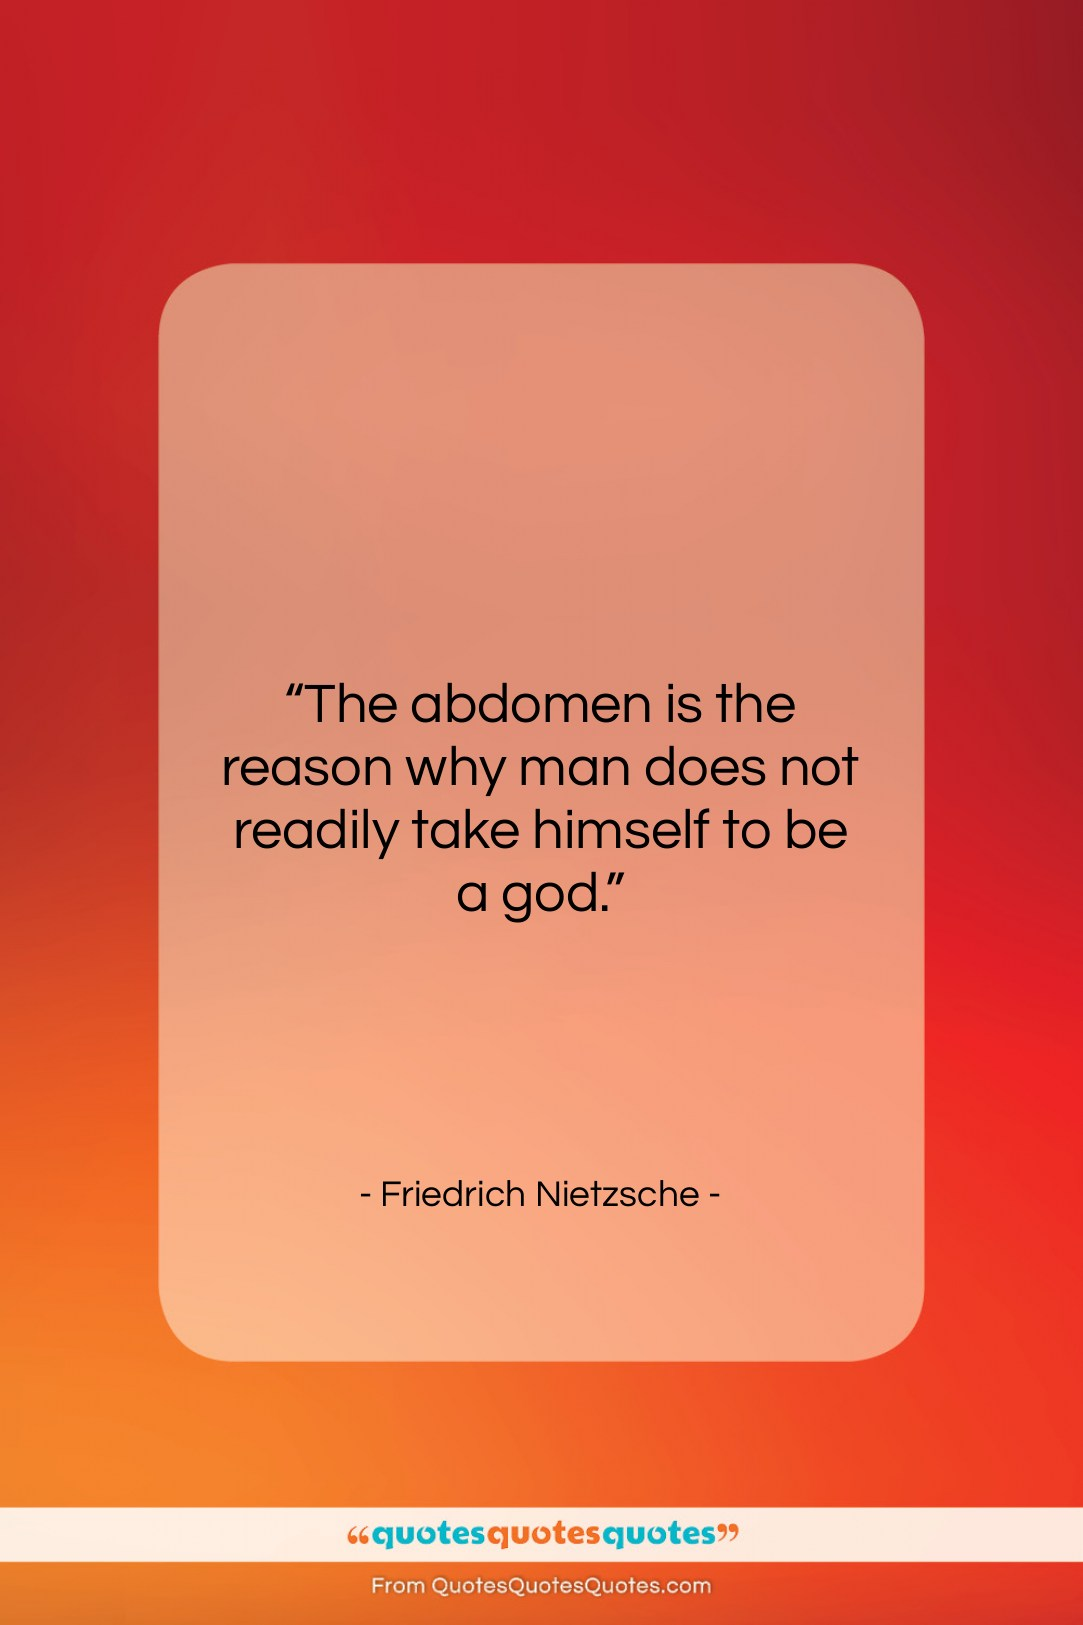 """Friedrich Nietzsche quote: """"The abdomen is the reason why man…""""- at QuotesQuotesQuotes.com"""